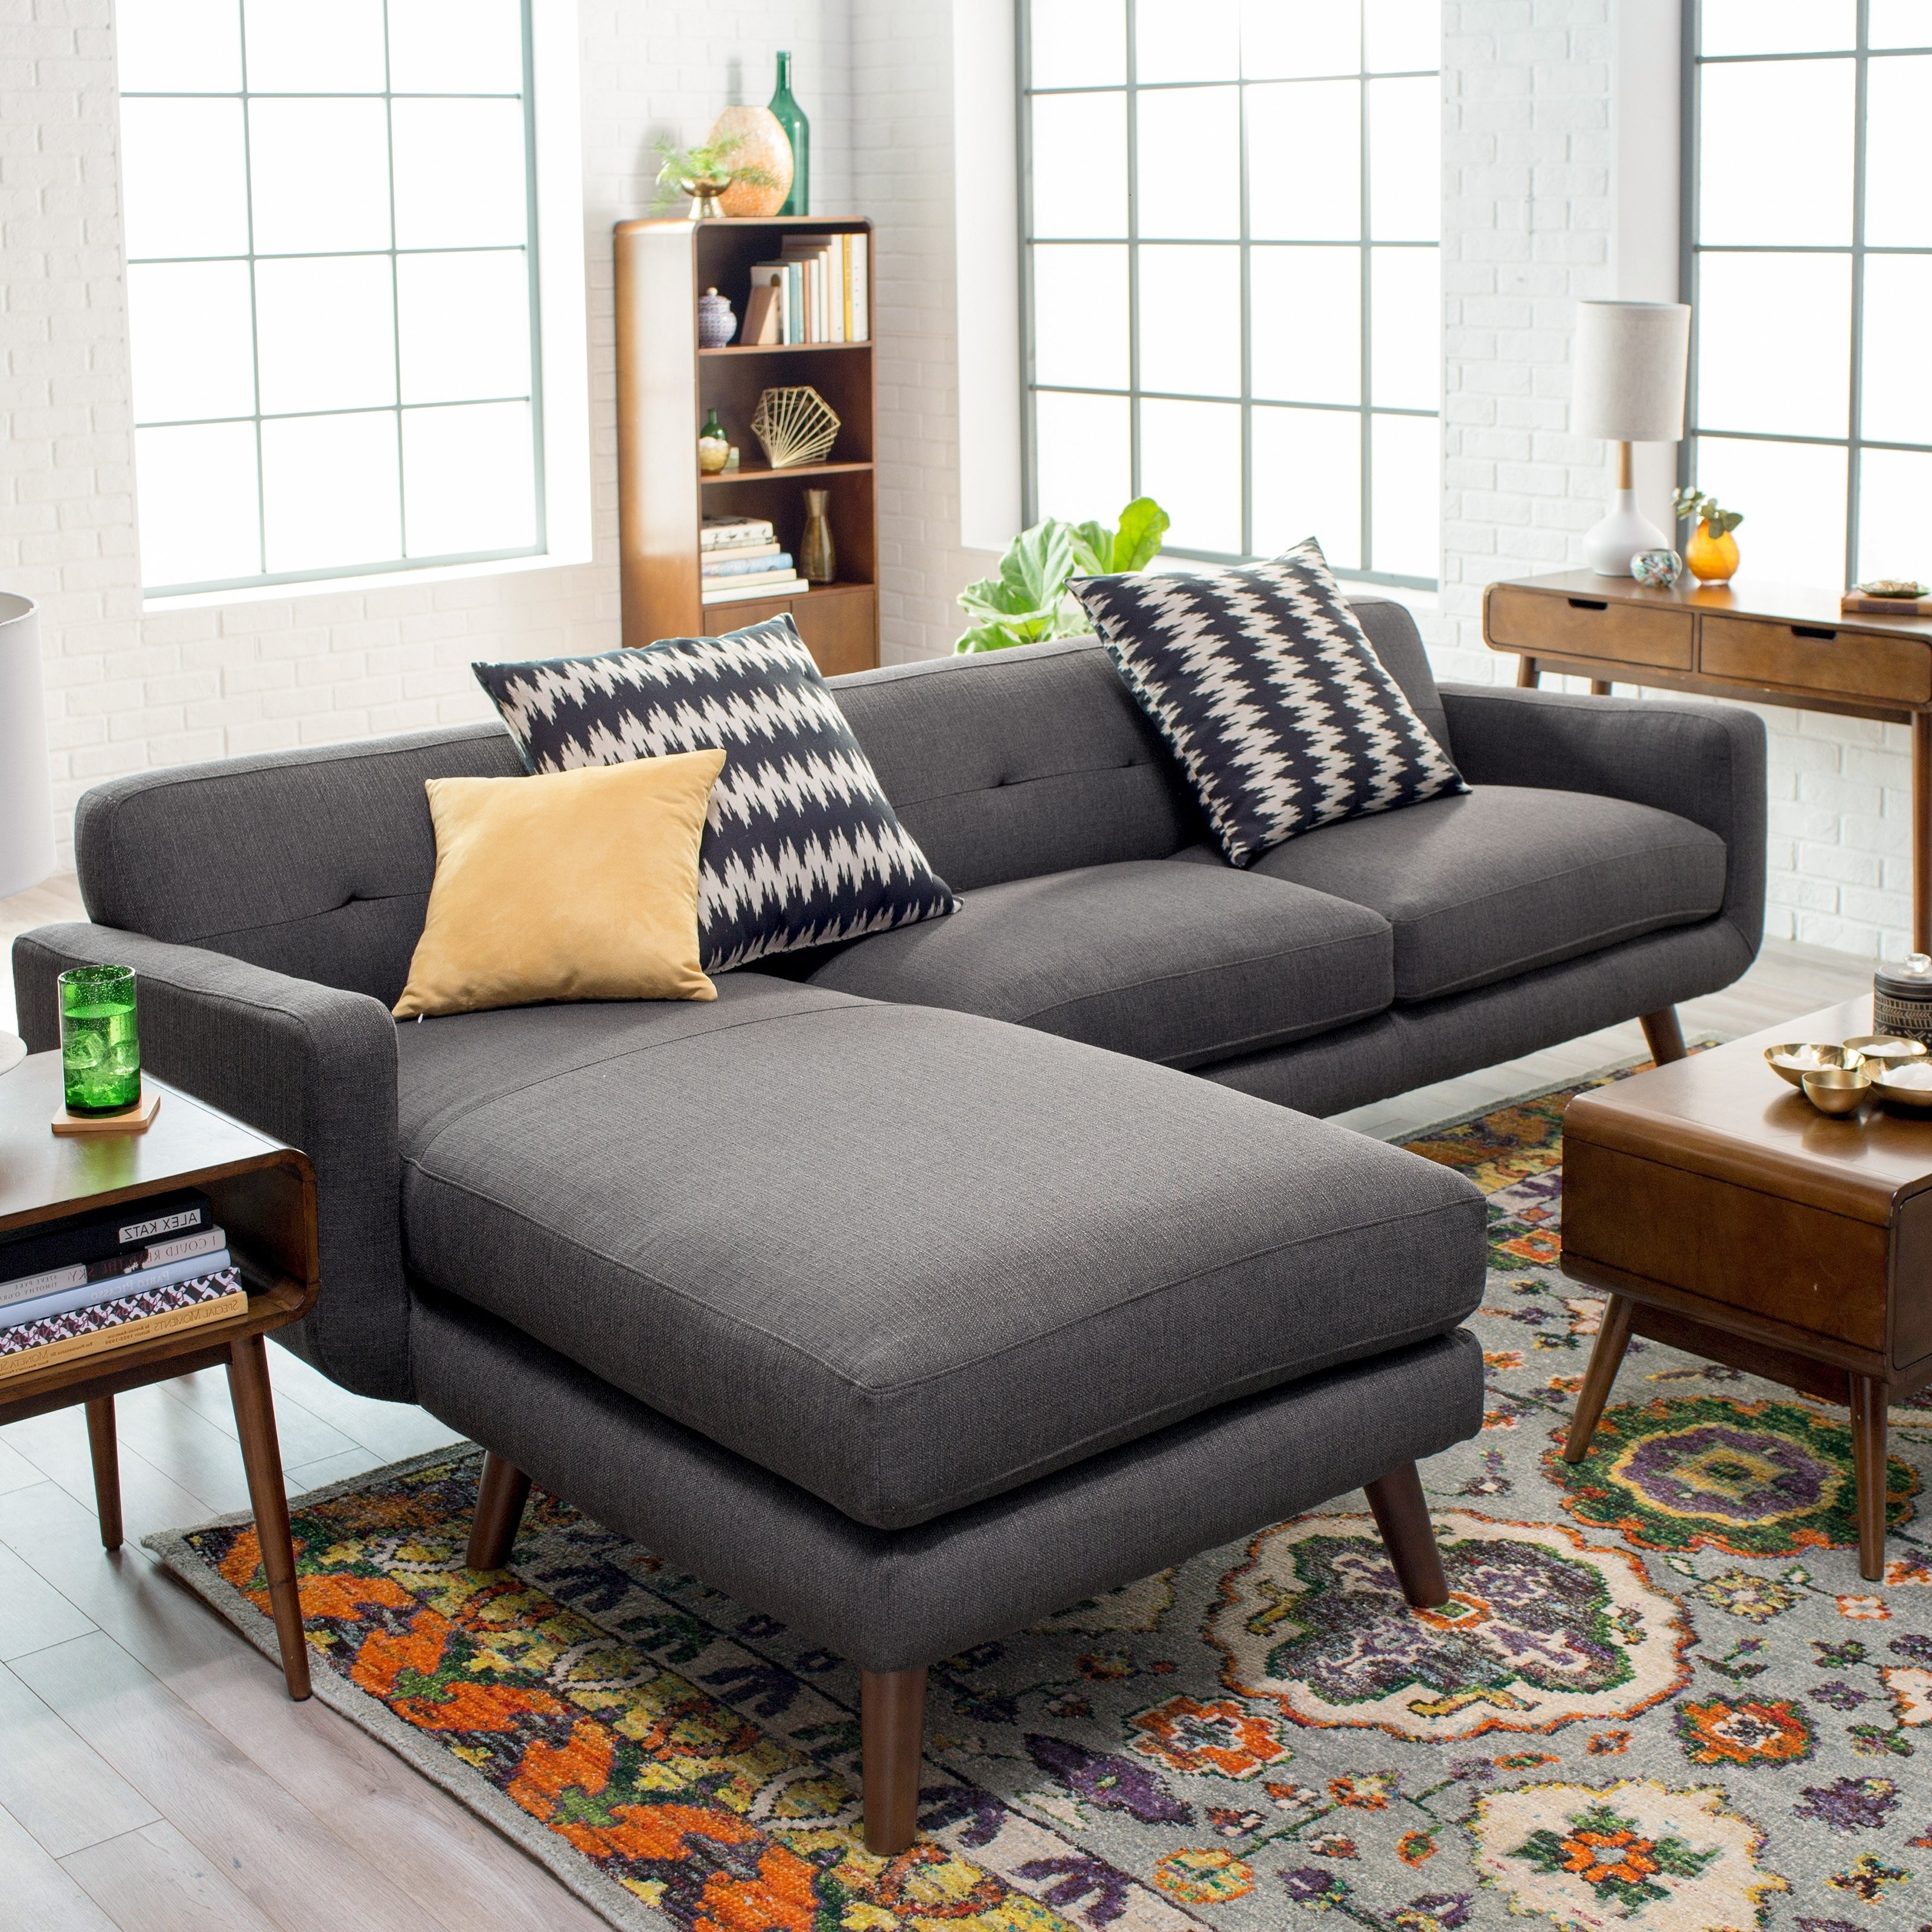 Farmers Furniture Sectional Sofas With Well Known Living Room Furniture : Sectional Sofas For Small Spaces Sectional (View 6 of 15)